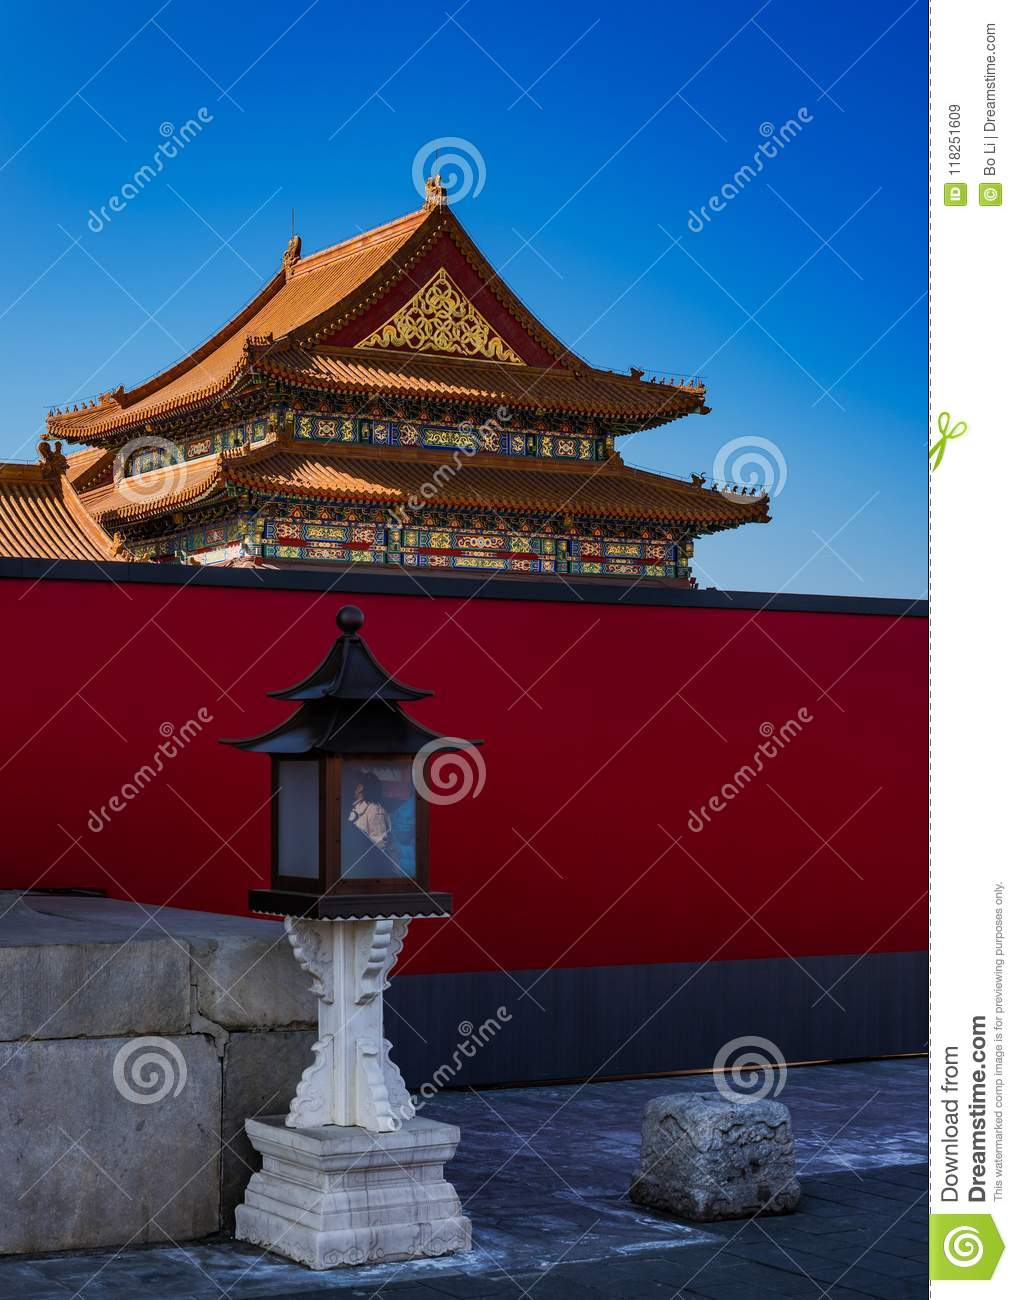 Traditional Chinese Lanterns and Buildings in the Forbidden City